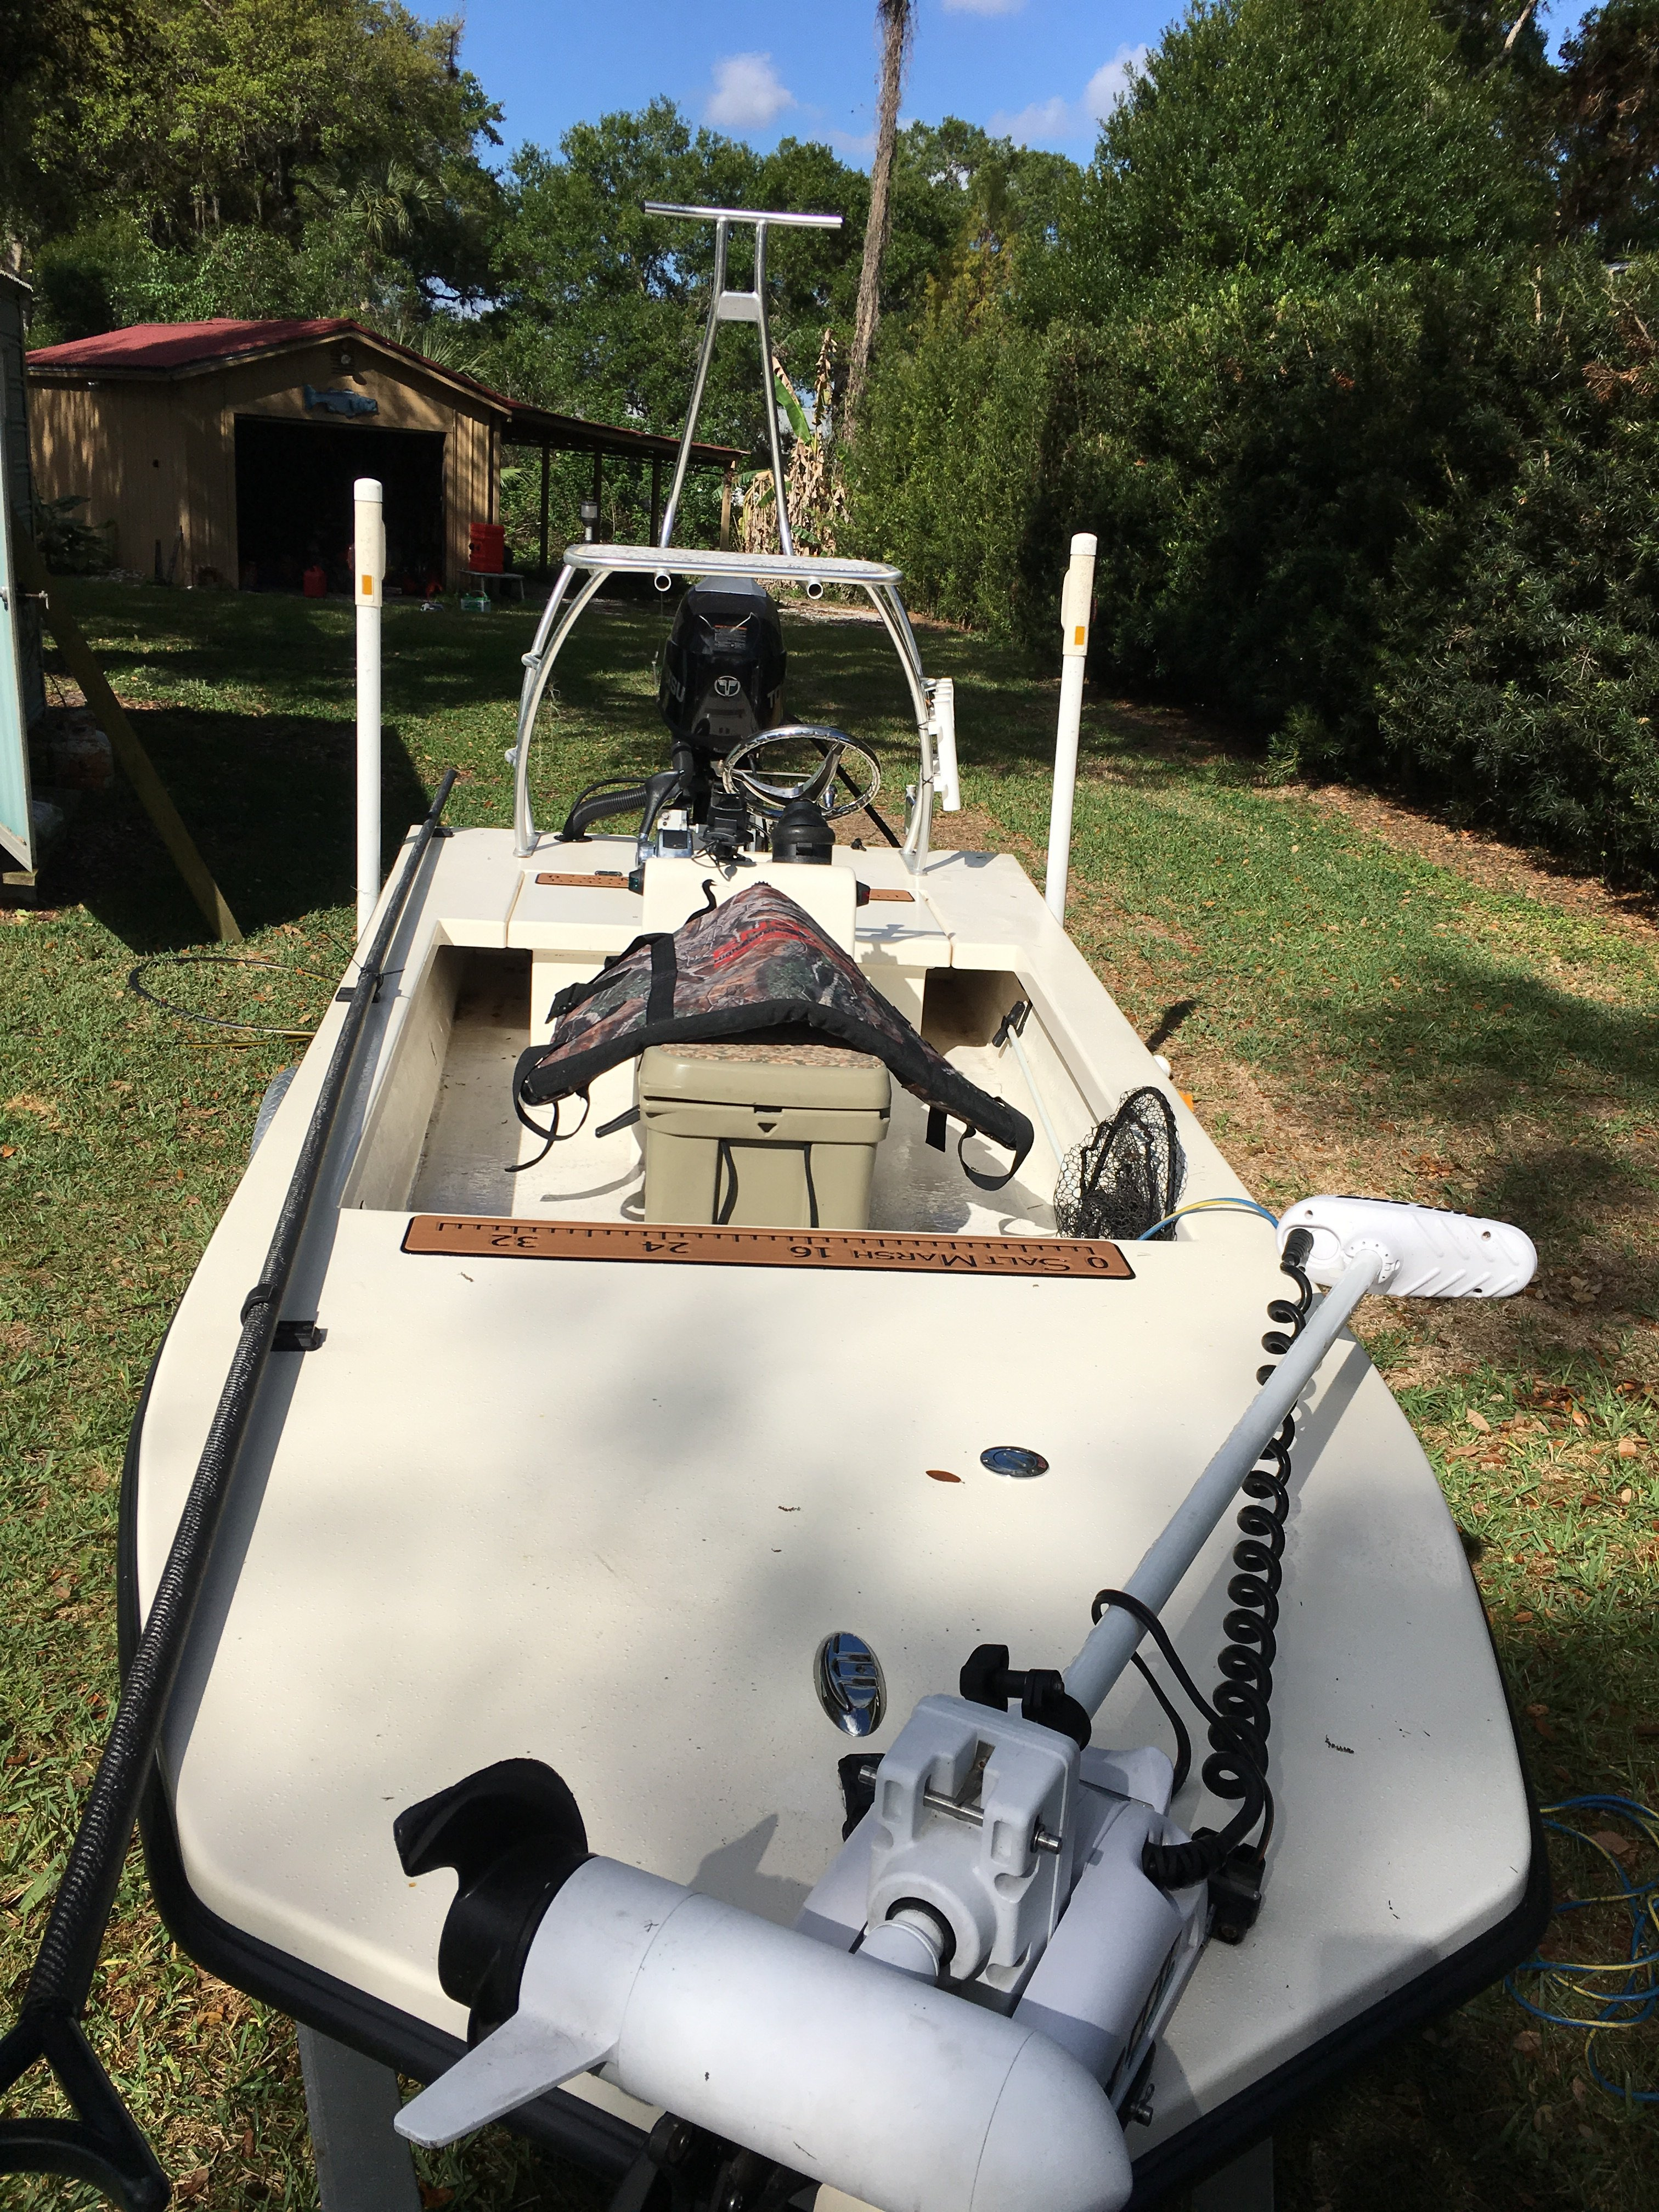 SOLD/EXPIRED - Saltmarsh 1656 CC for sale   Microskiff - Dedicated To The Smallest Of Skiffs